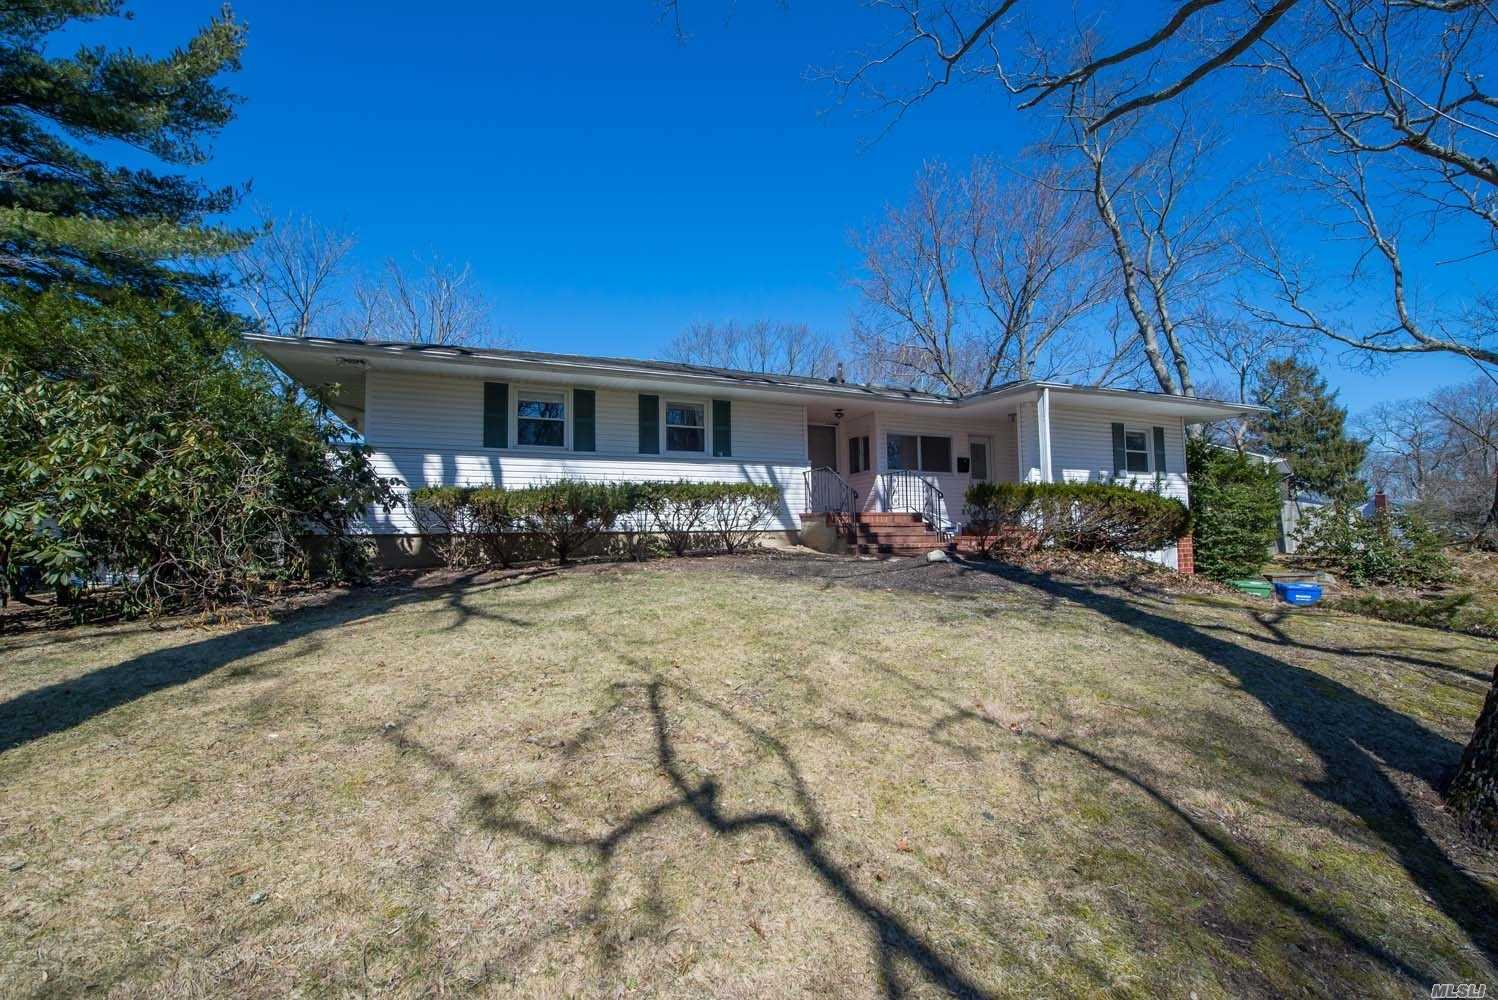 Super Clean w 9Ft Ceilings and an Open Floorplan , Hardwood Floors, Newer Appliances, Spacious Laundry Room, Fireplace, Sun Room , Spacious Bedrooms , Well Appointed.